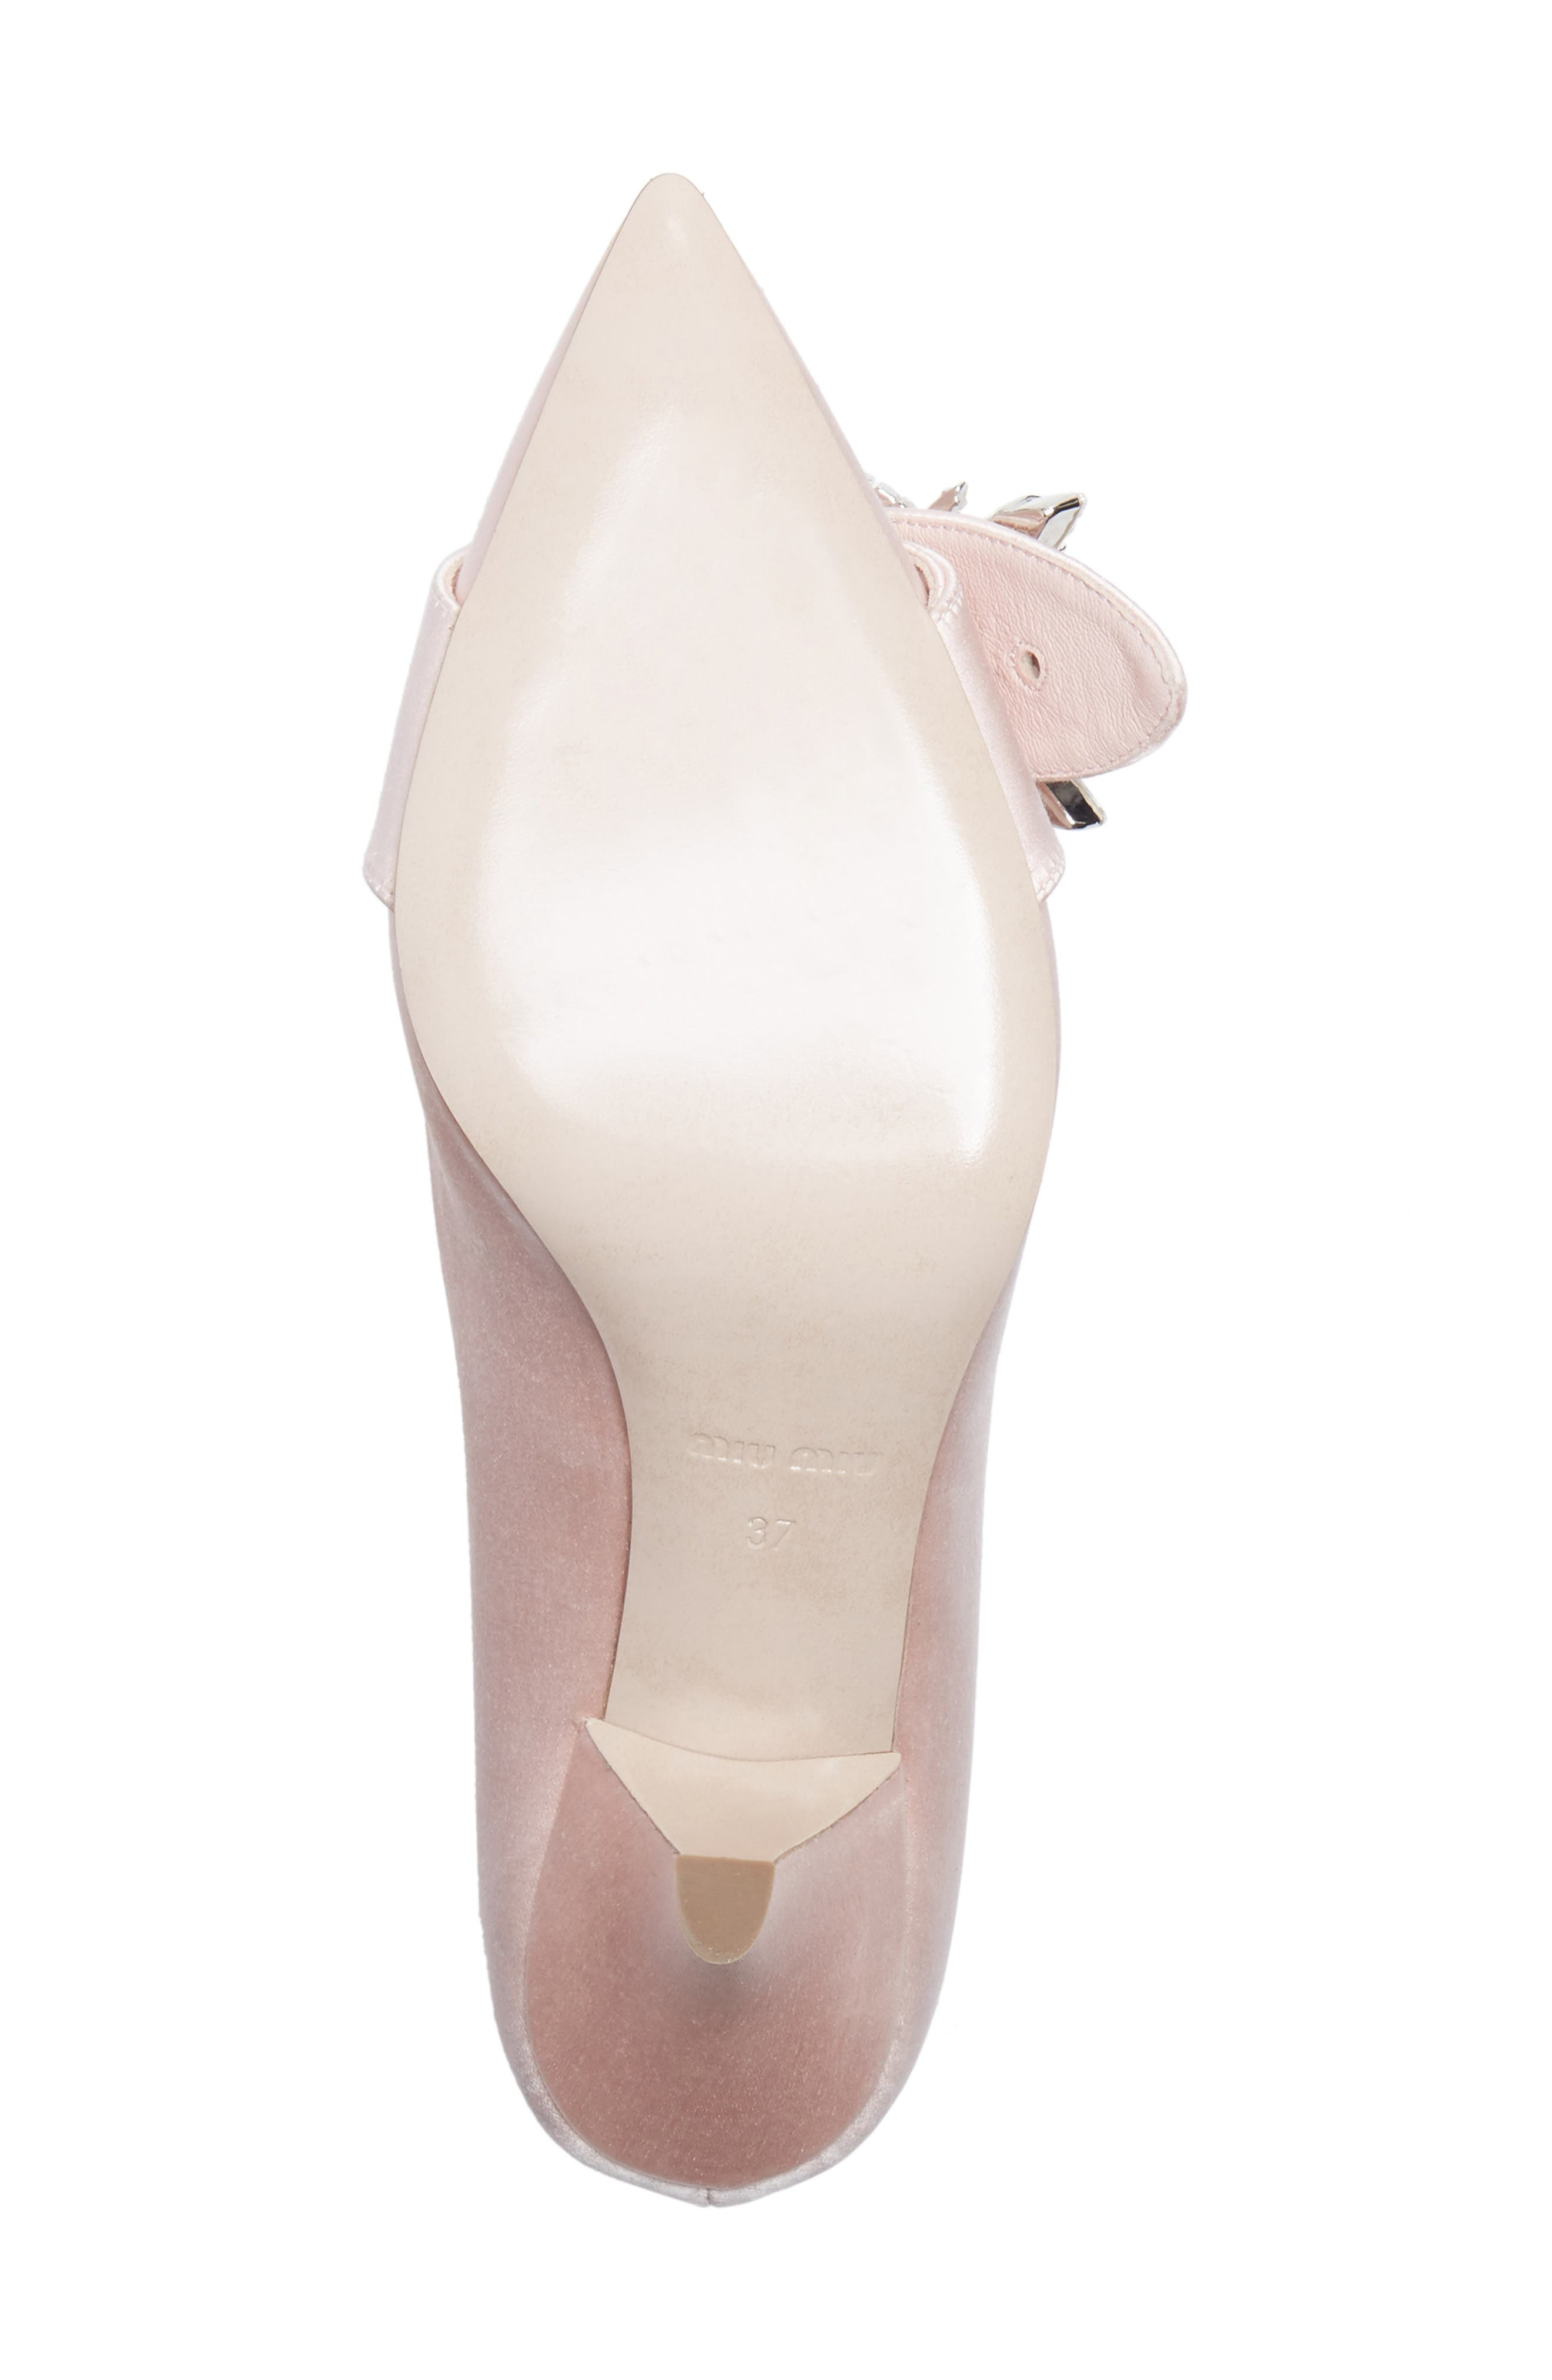 Crystal Buckle Pump,                             Alternate thumbnail 6, color,                             Pink Satin